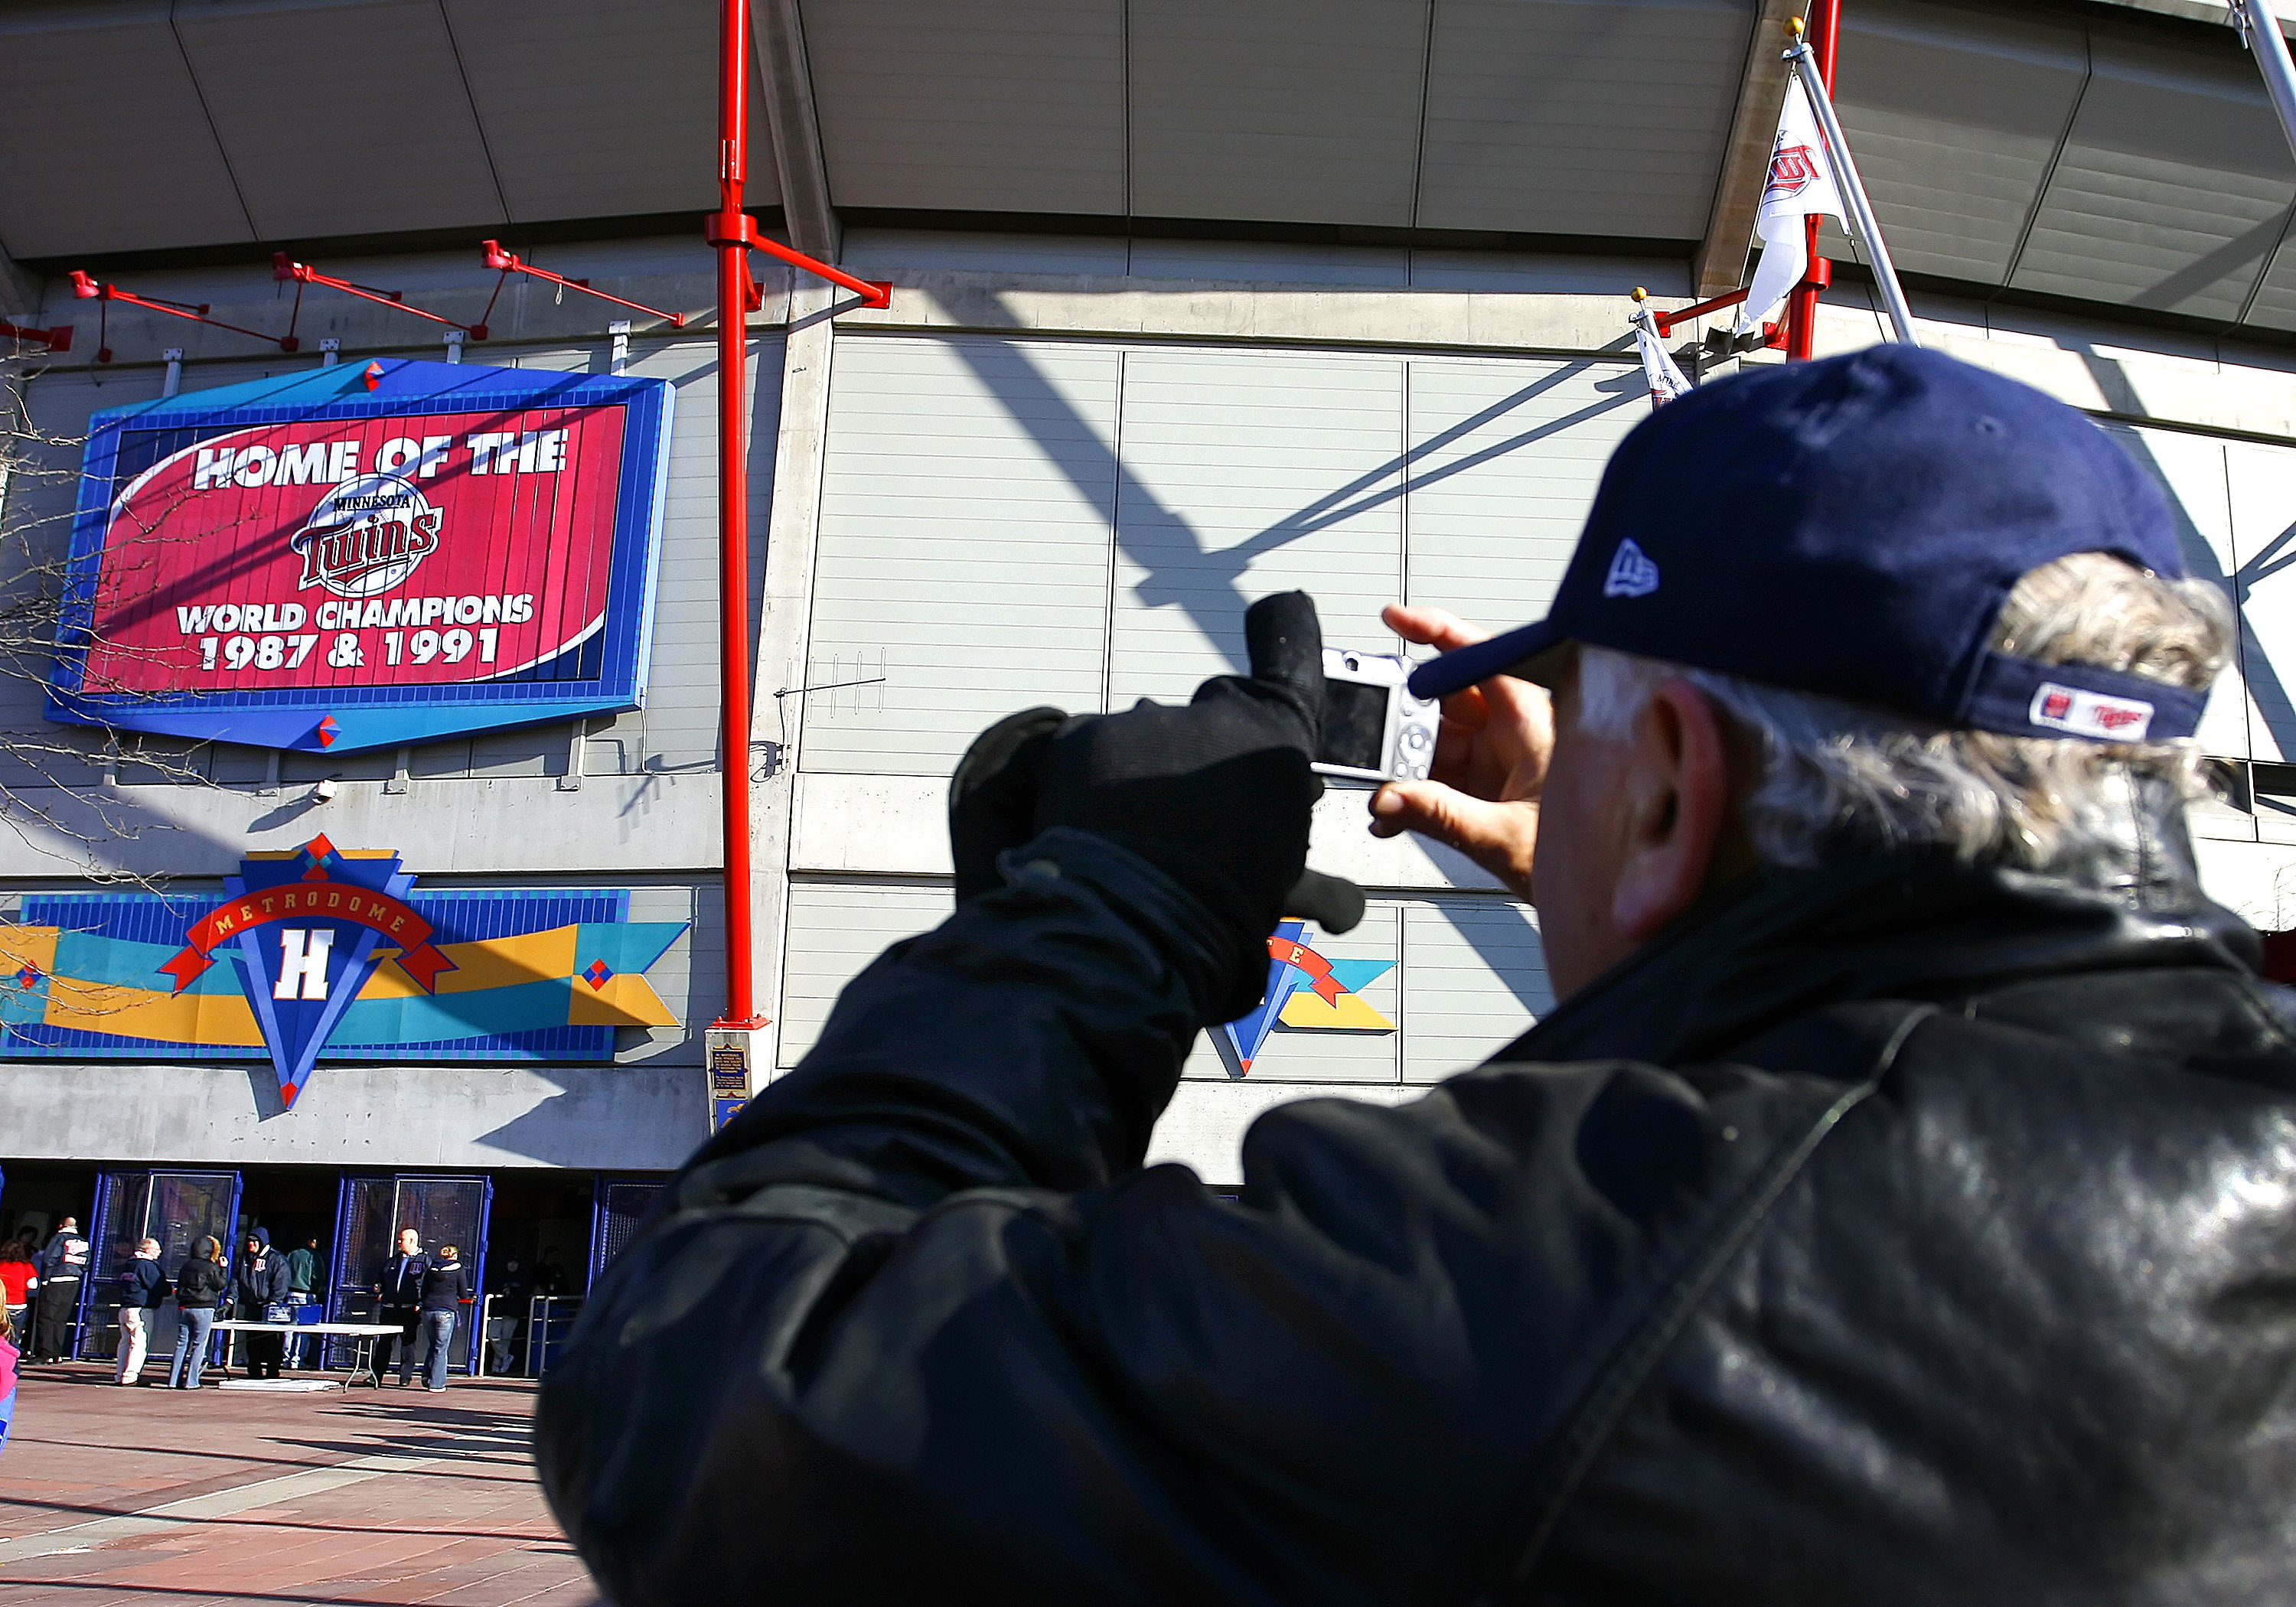 MINNEAPOLIS, MN - APRIL 6: A fan takes a picture of the Metrodome, the Minnesota Twins home in Minneapolis, Minnesota April 6, 2009. It's the last home opener for the Twins at the Metrodome; they'll open at the new Target Field, also in Minneapolis, in 20